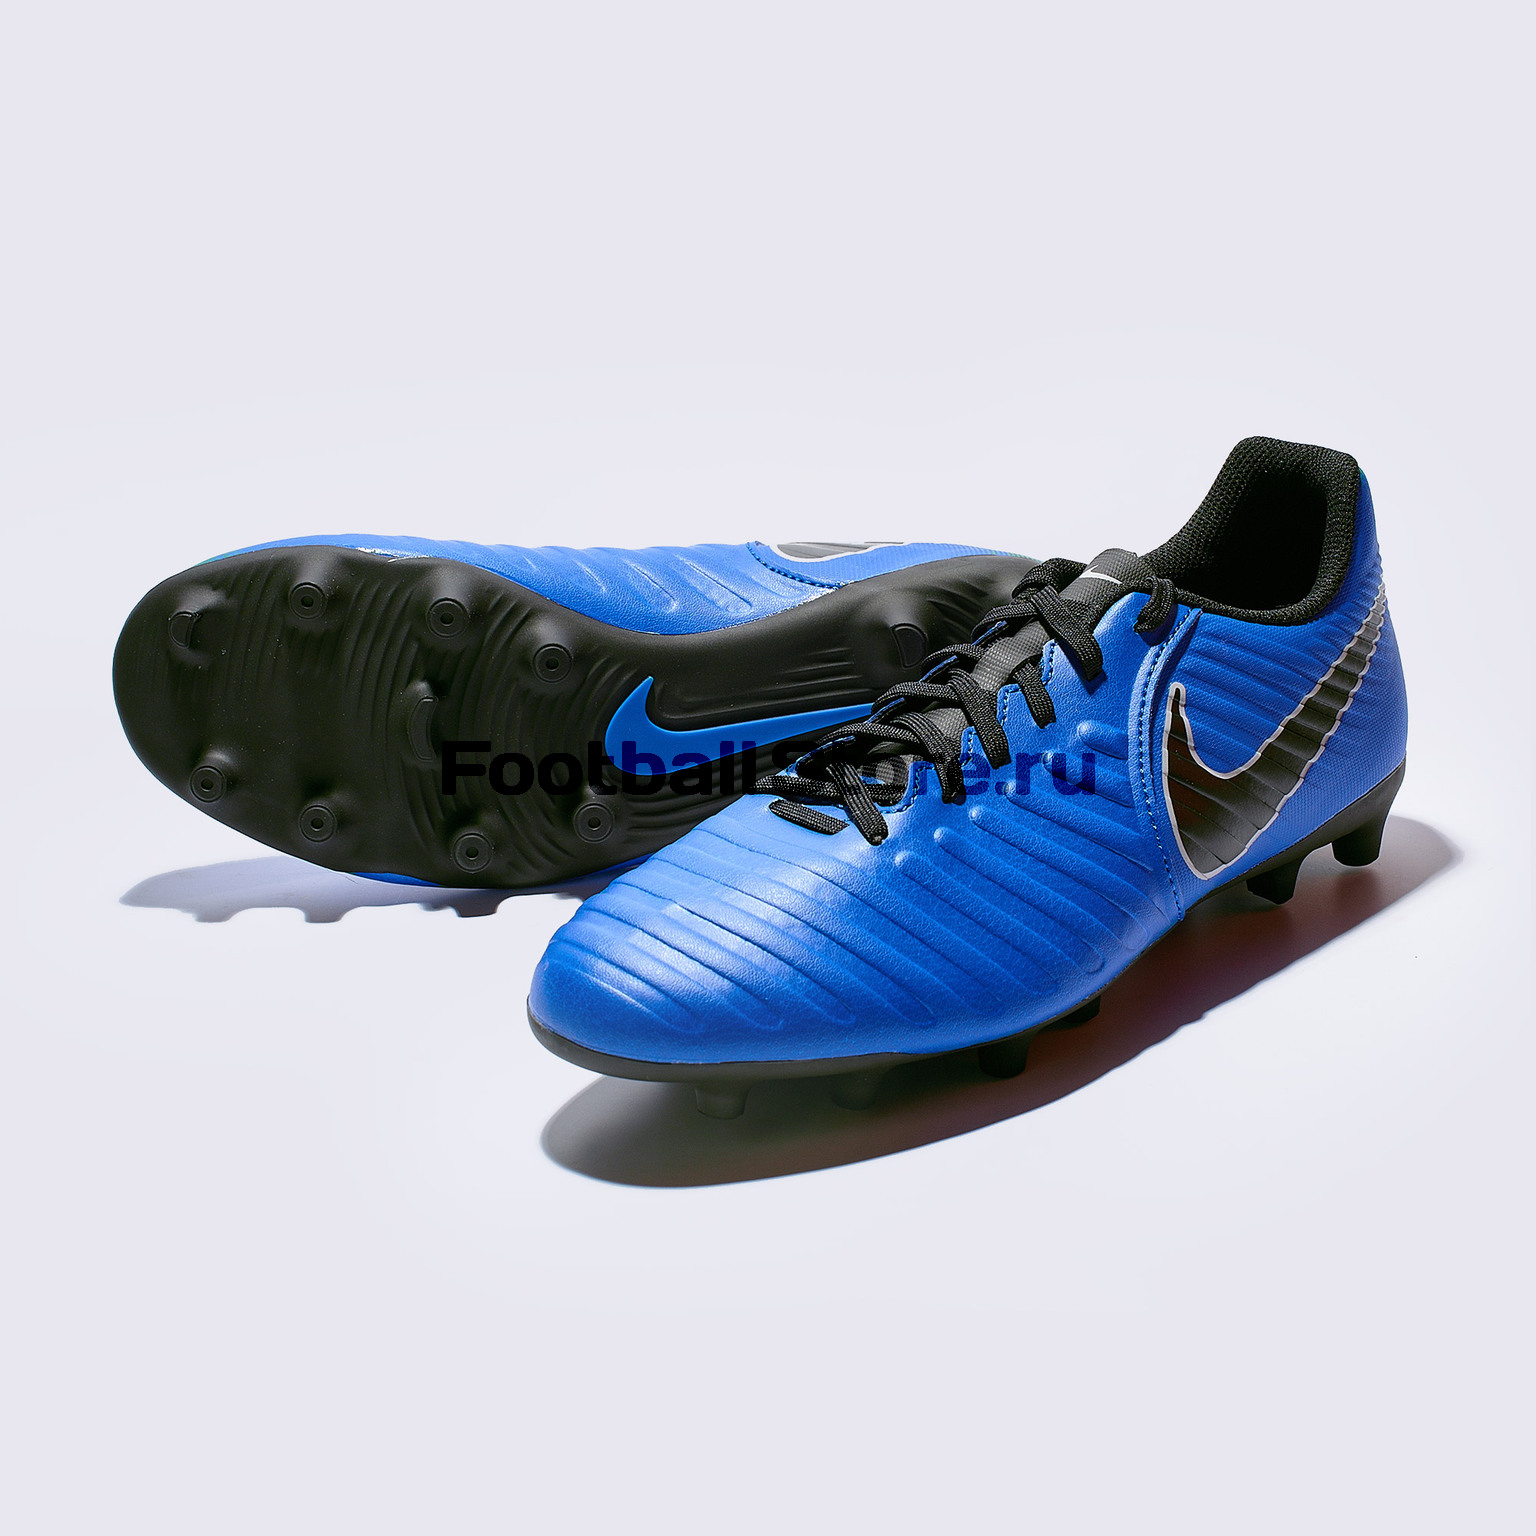 Бутсы Nike Legend 7 Club FG AO2597-400 бутсы nike mercurial victory iii fg 509128 800